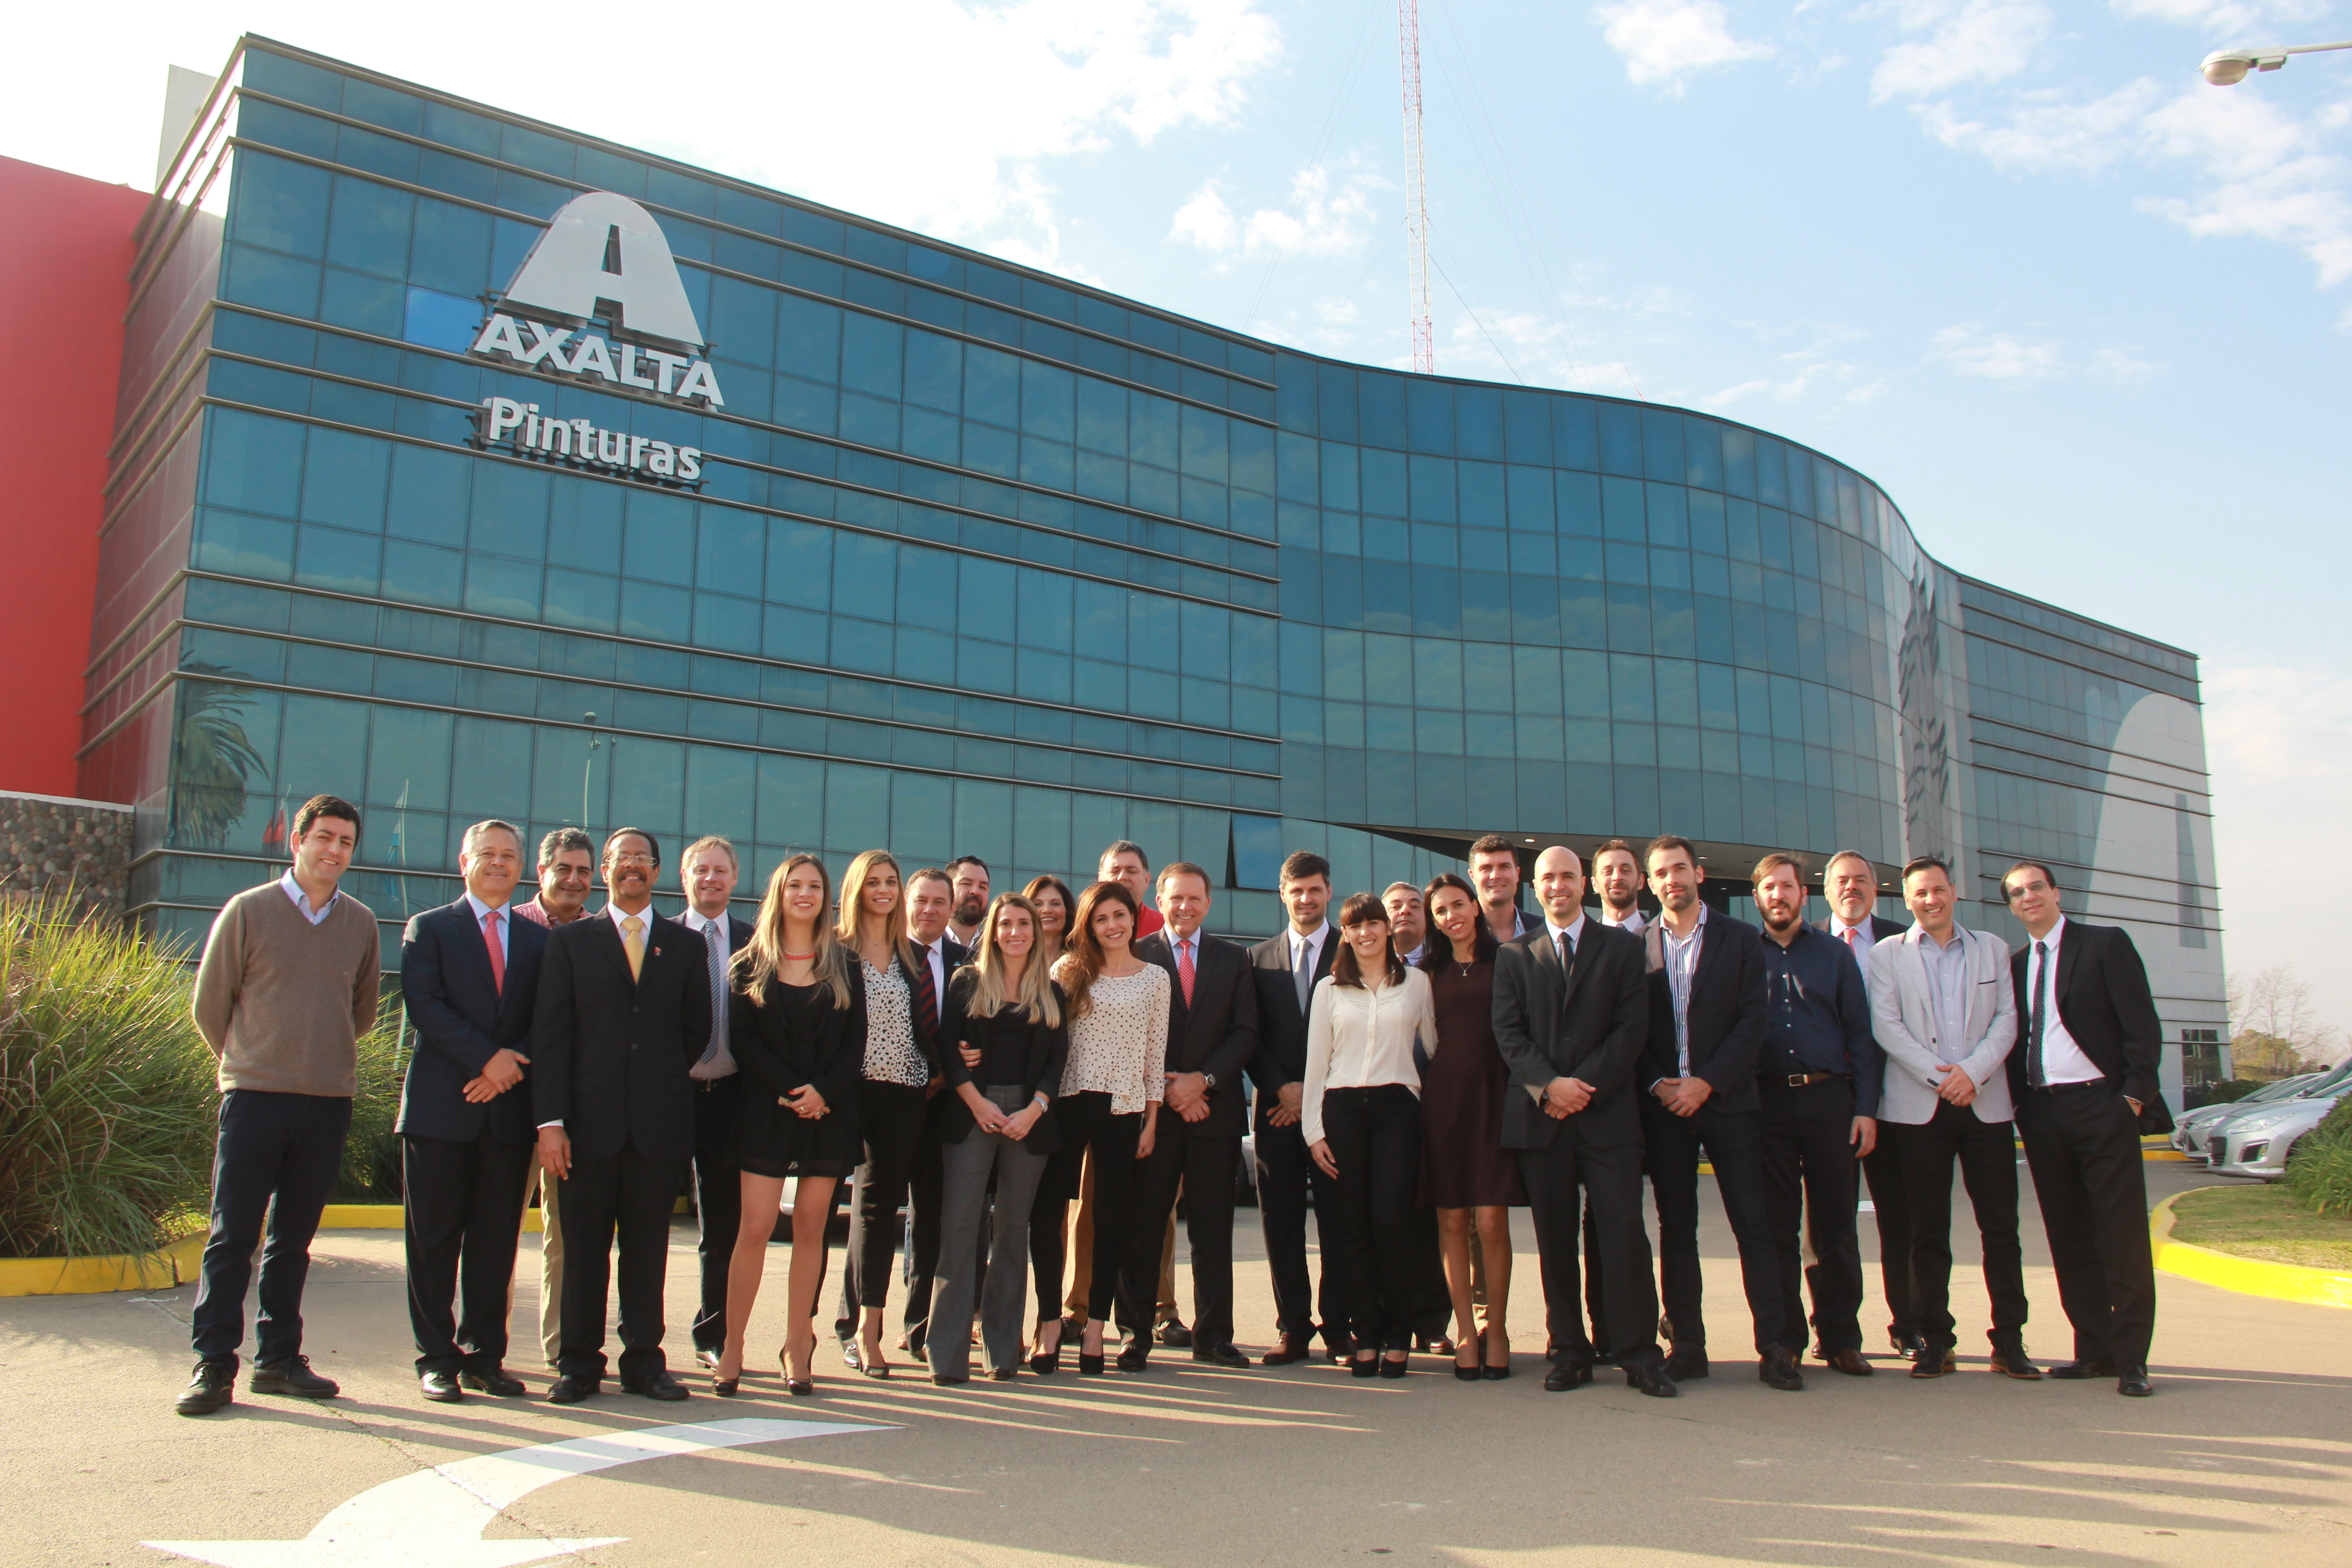 Axalta Chairman and CEO Charlie Shaver joins employees at celebration of new coatings production center in Escobar, Province of Buenos Aires, Argentina (Photo: Axalta)